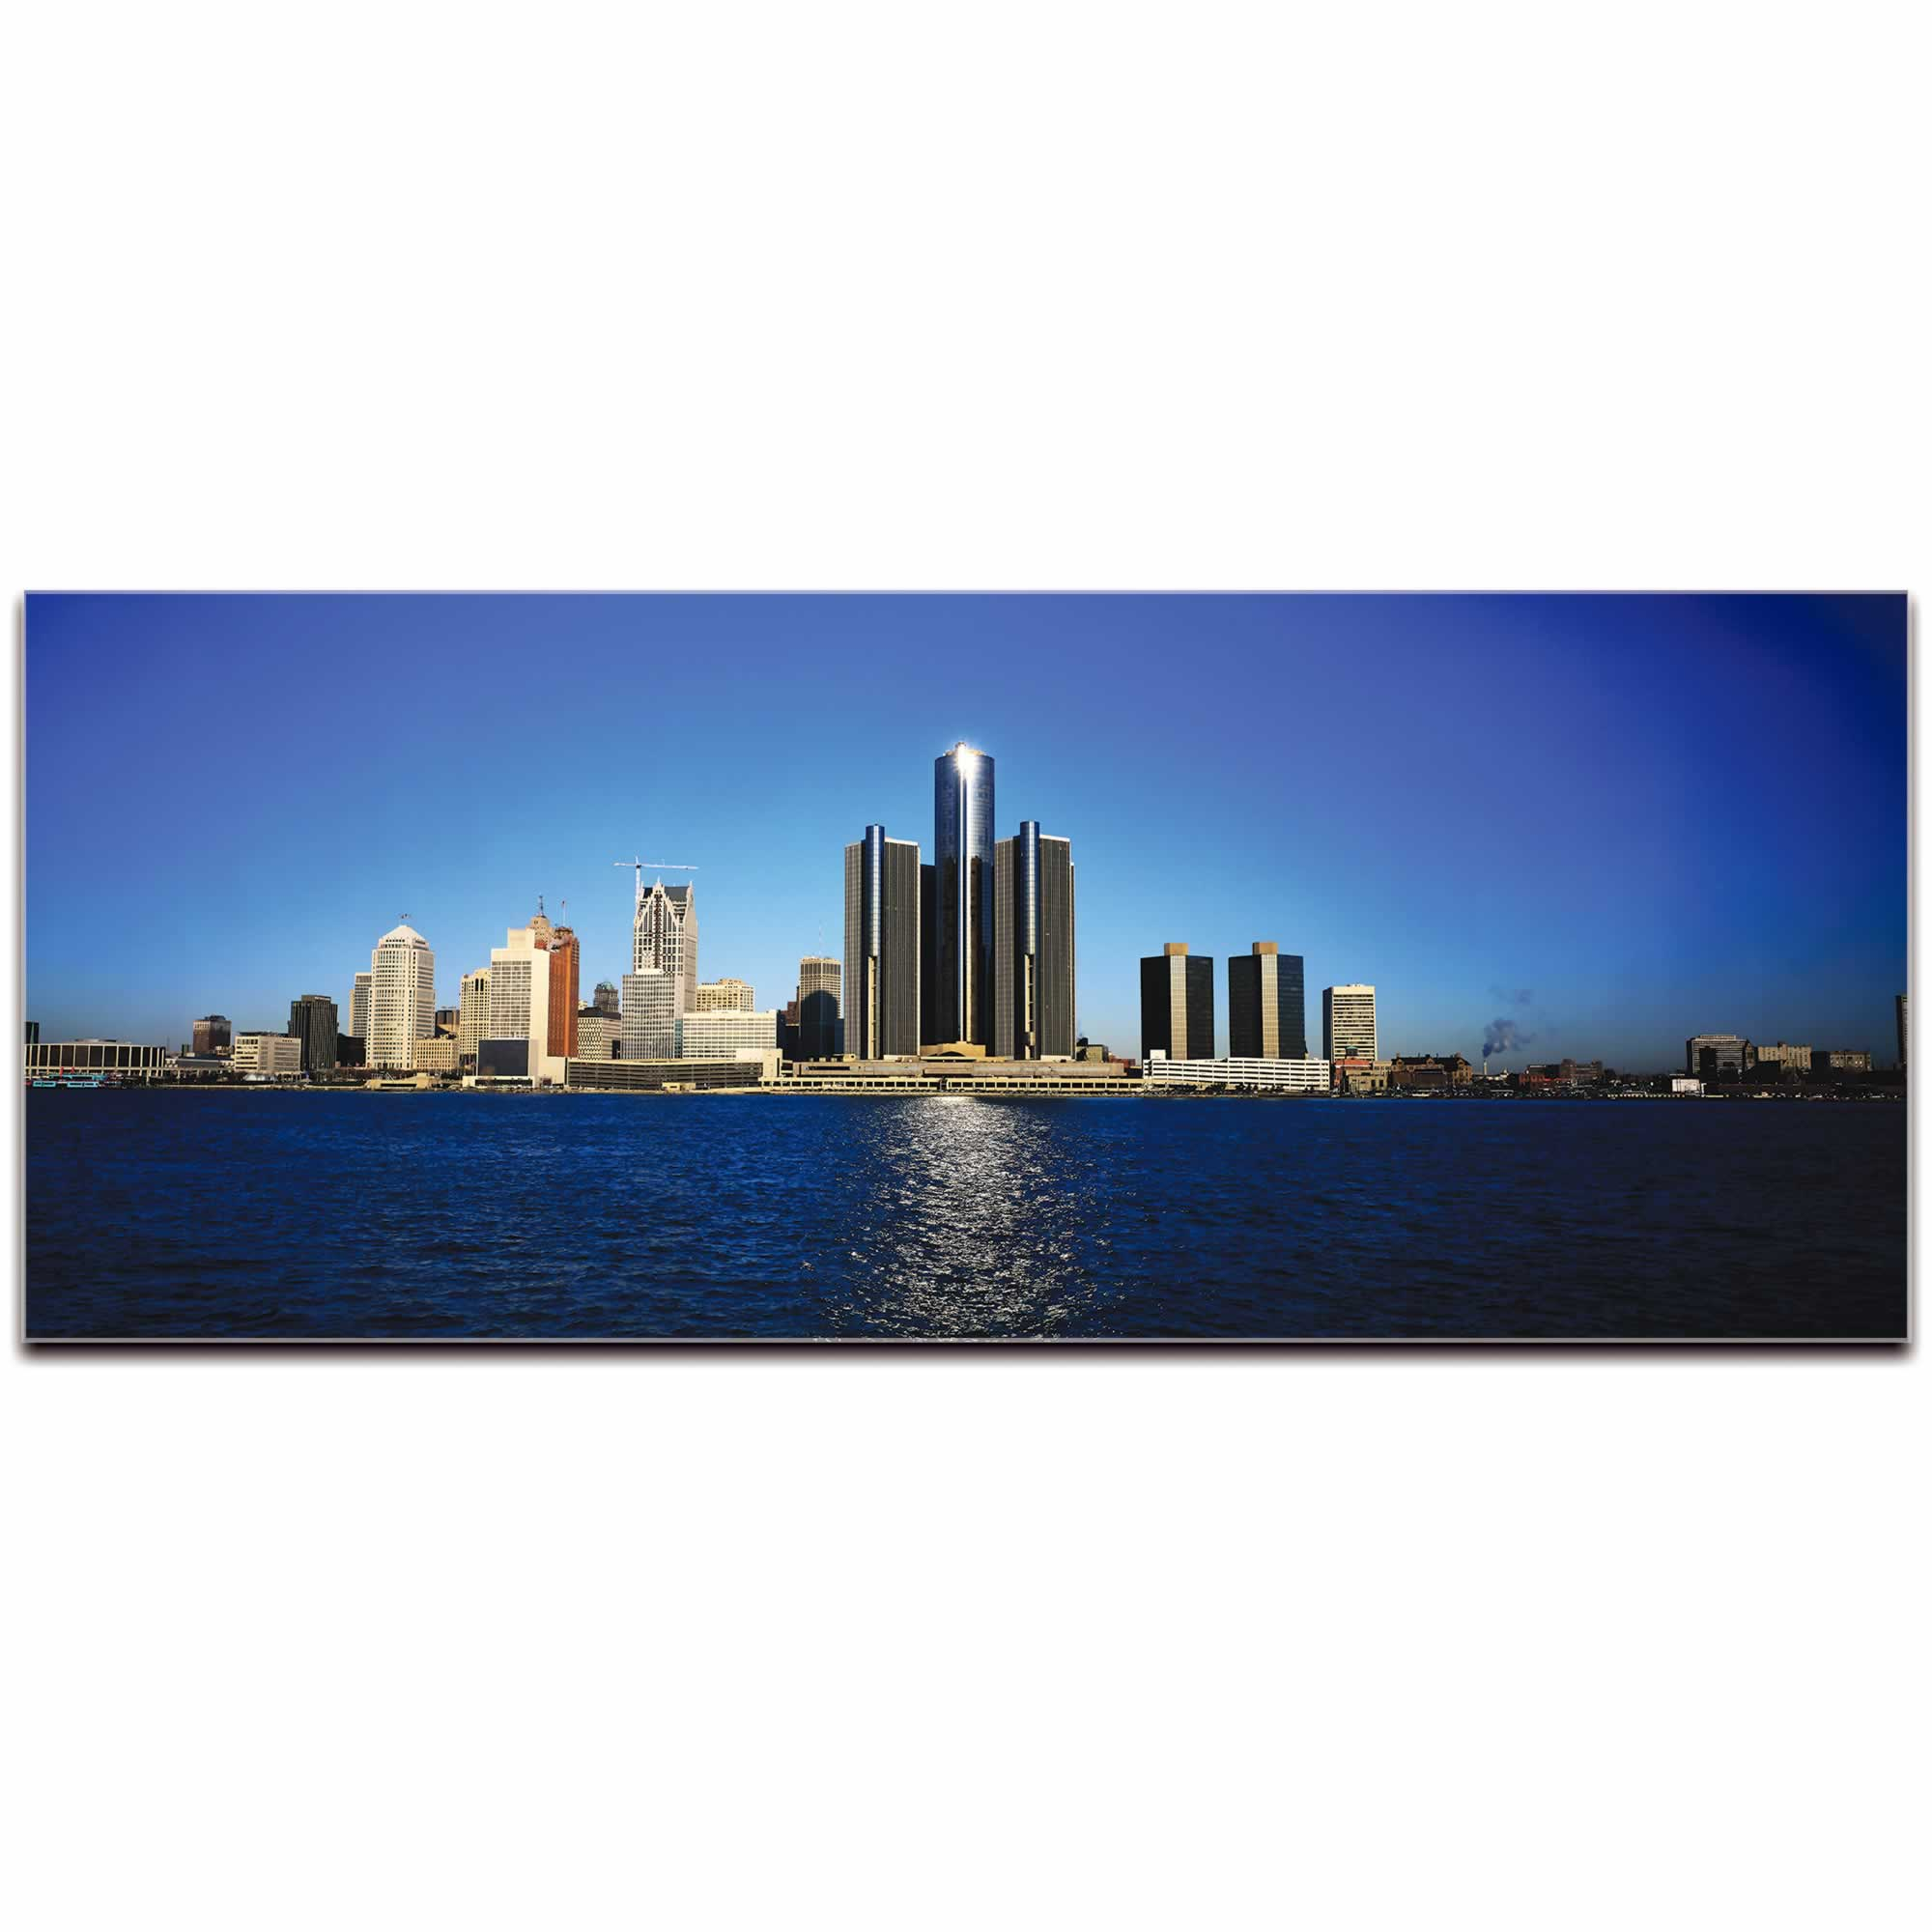 Detroit City Skyline - Urban Modern Art, Designer Home Decor, Cityscape Wall Artwork, Trendy Contemporary Art